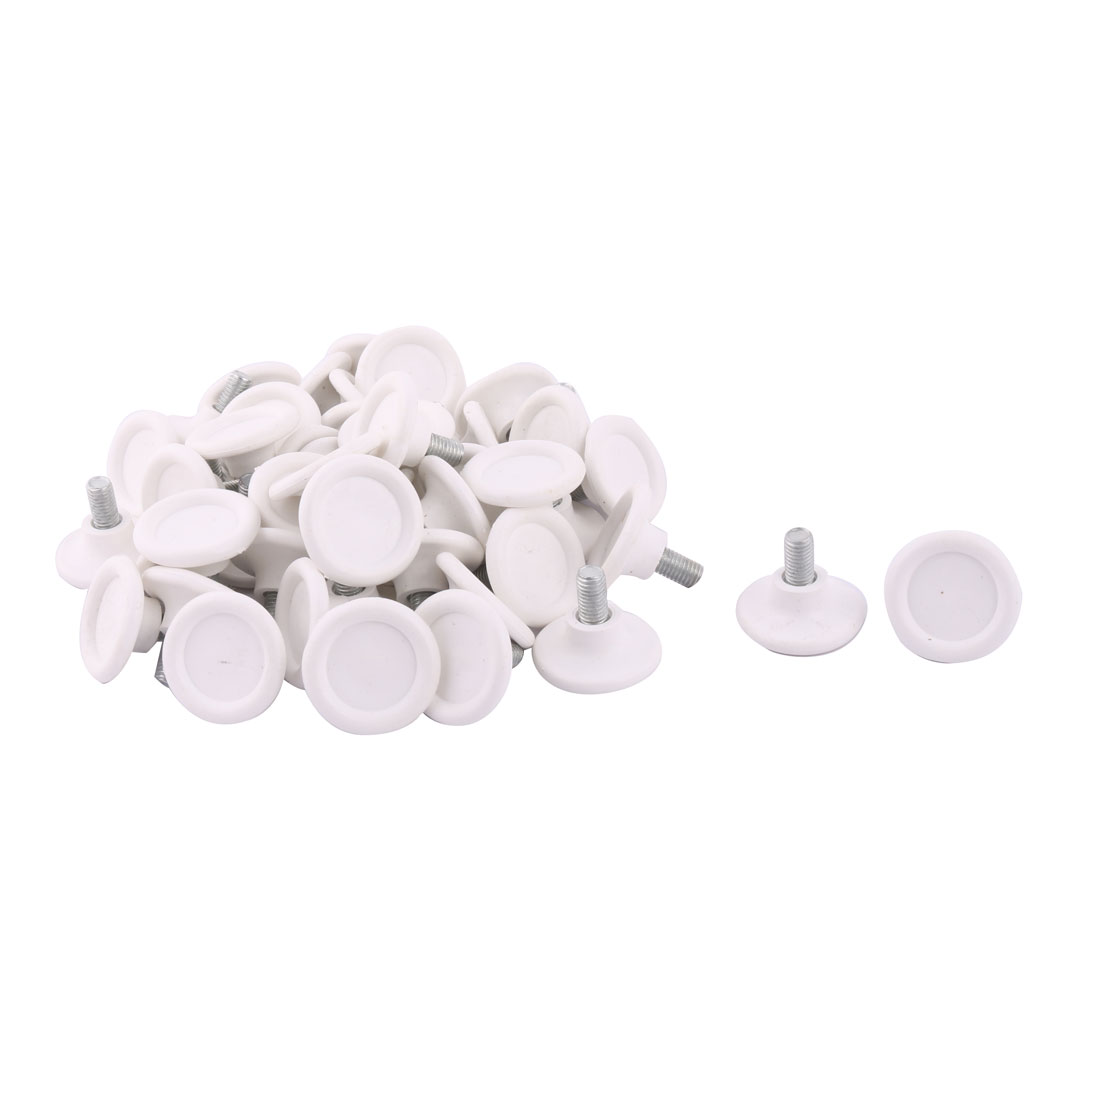 Home Plastic Round Base Adjustable Furniture Leg Protector Leveling Foot White 50pcs